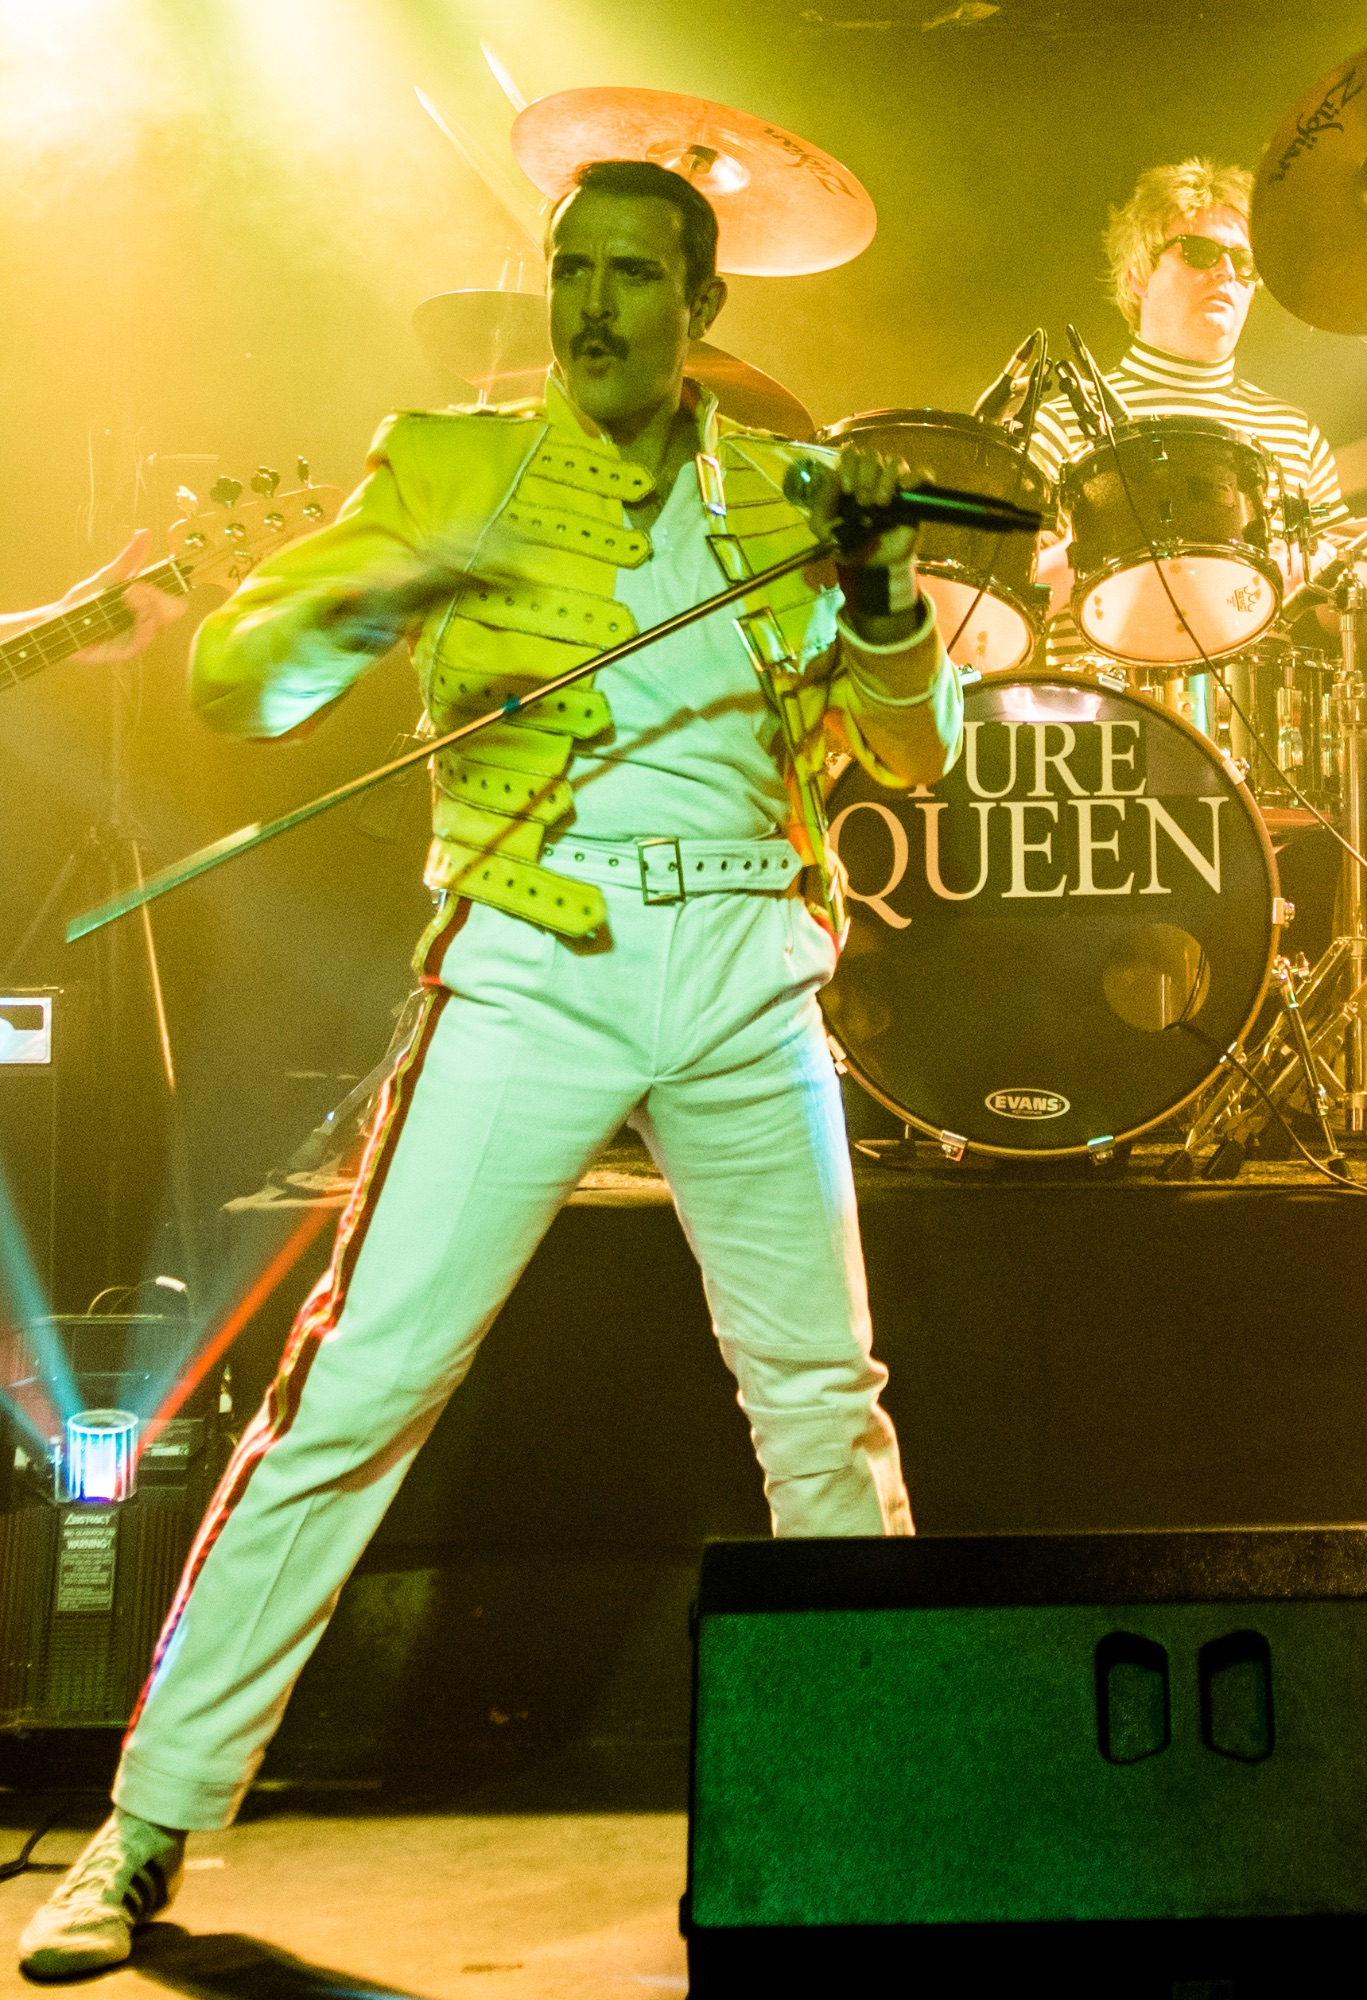 Pure Queen Live Band Tribute Show